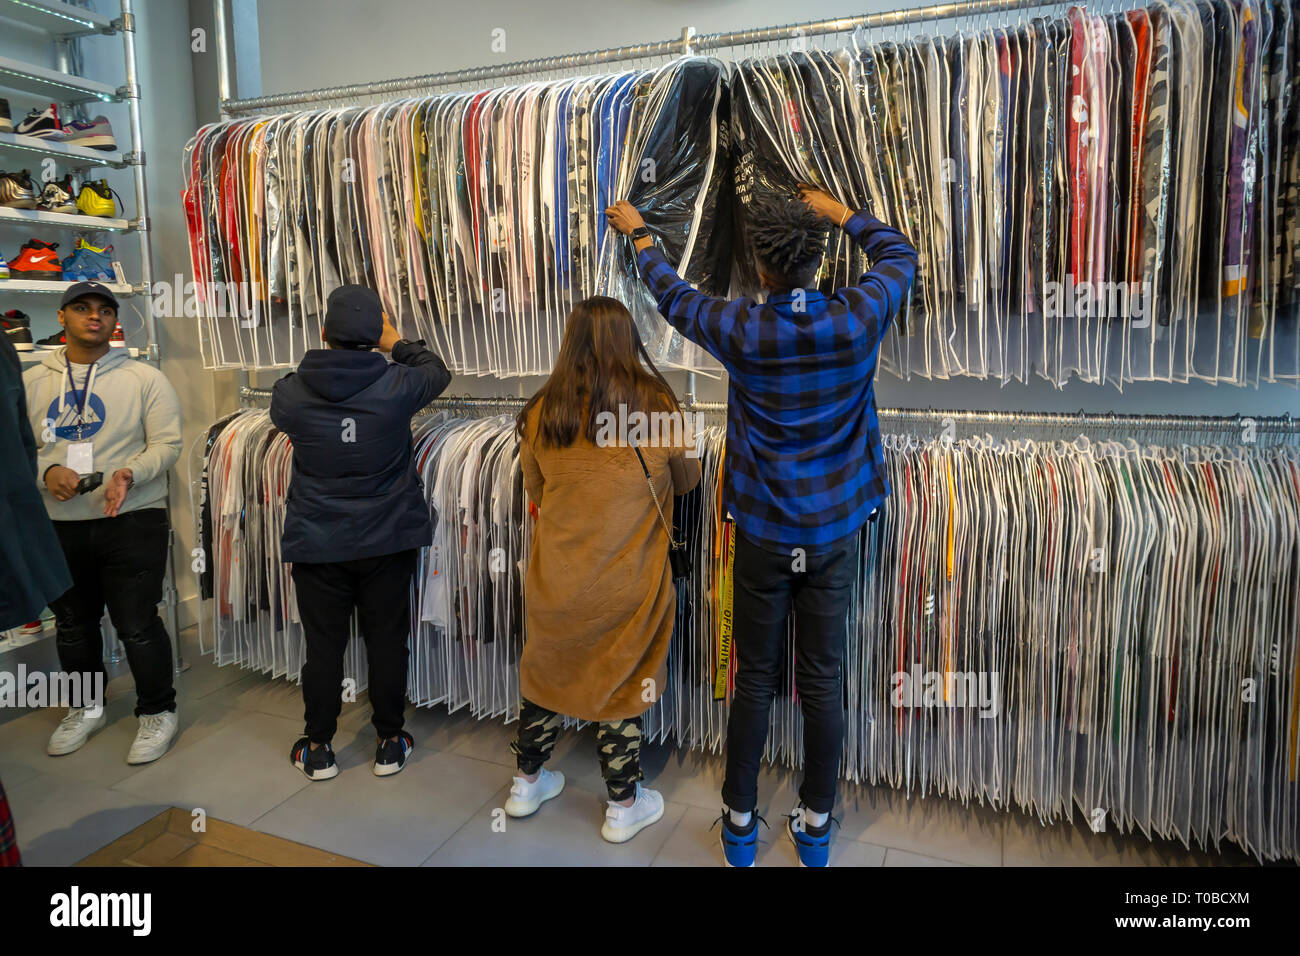 6a708beedfe5 Supreme Soho Stock Photos   Supreme Soho Stock Images - Alamy